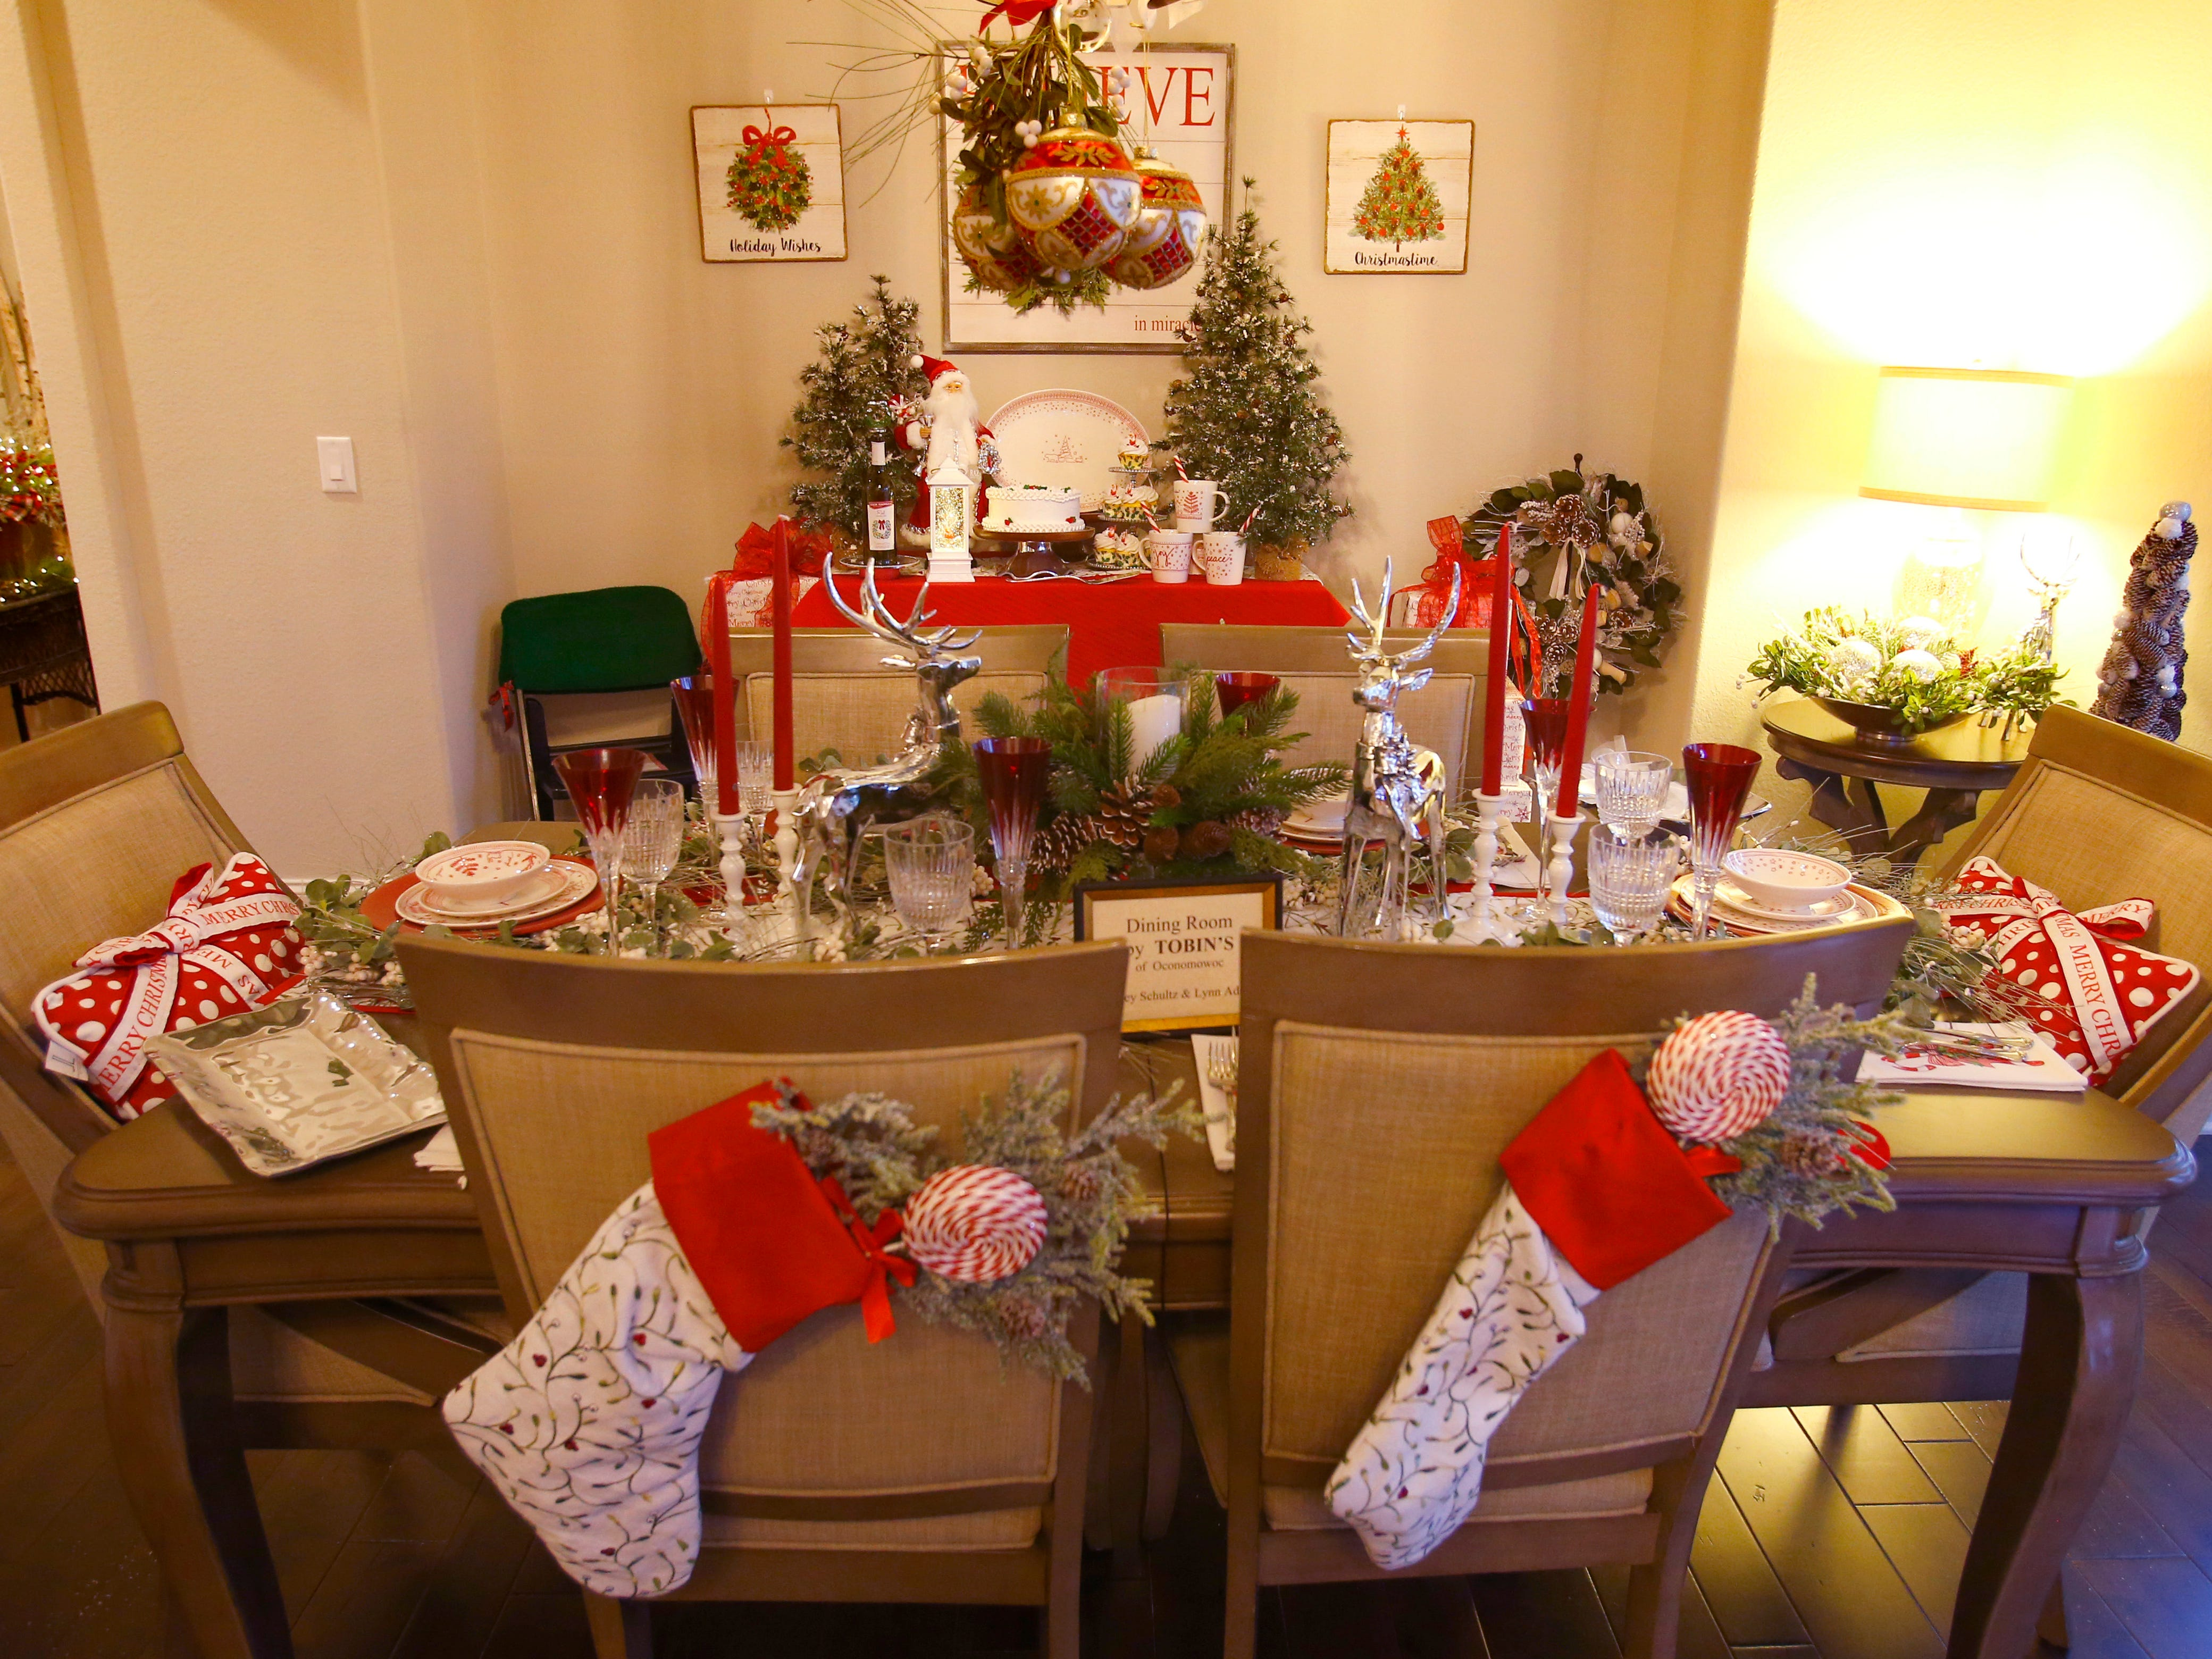 The dining room is set for the 26th annual Christmas Fantasy House with 18 rooms decorated by more than 16 area decorators to benefit the Ronald McDonald House Charities Eastern Wisconsin. The Fantasy house will be open 10 a.m. to 8 p.m. on Nov. 9, and 10 a.m. to 6 p.m. on Nov. 10 and 11. Parking and shuttle to the House is at Ridgewood Baptist Church, 2720 Lilly Road, Brookfield. Tickets are $20 at the door.